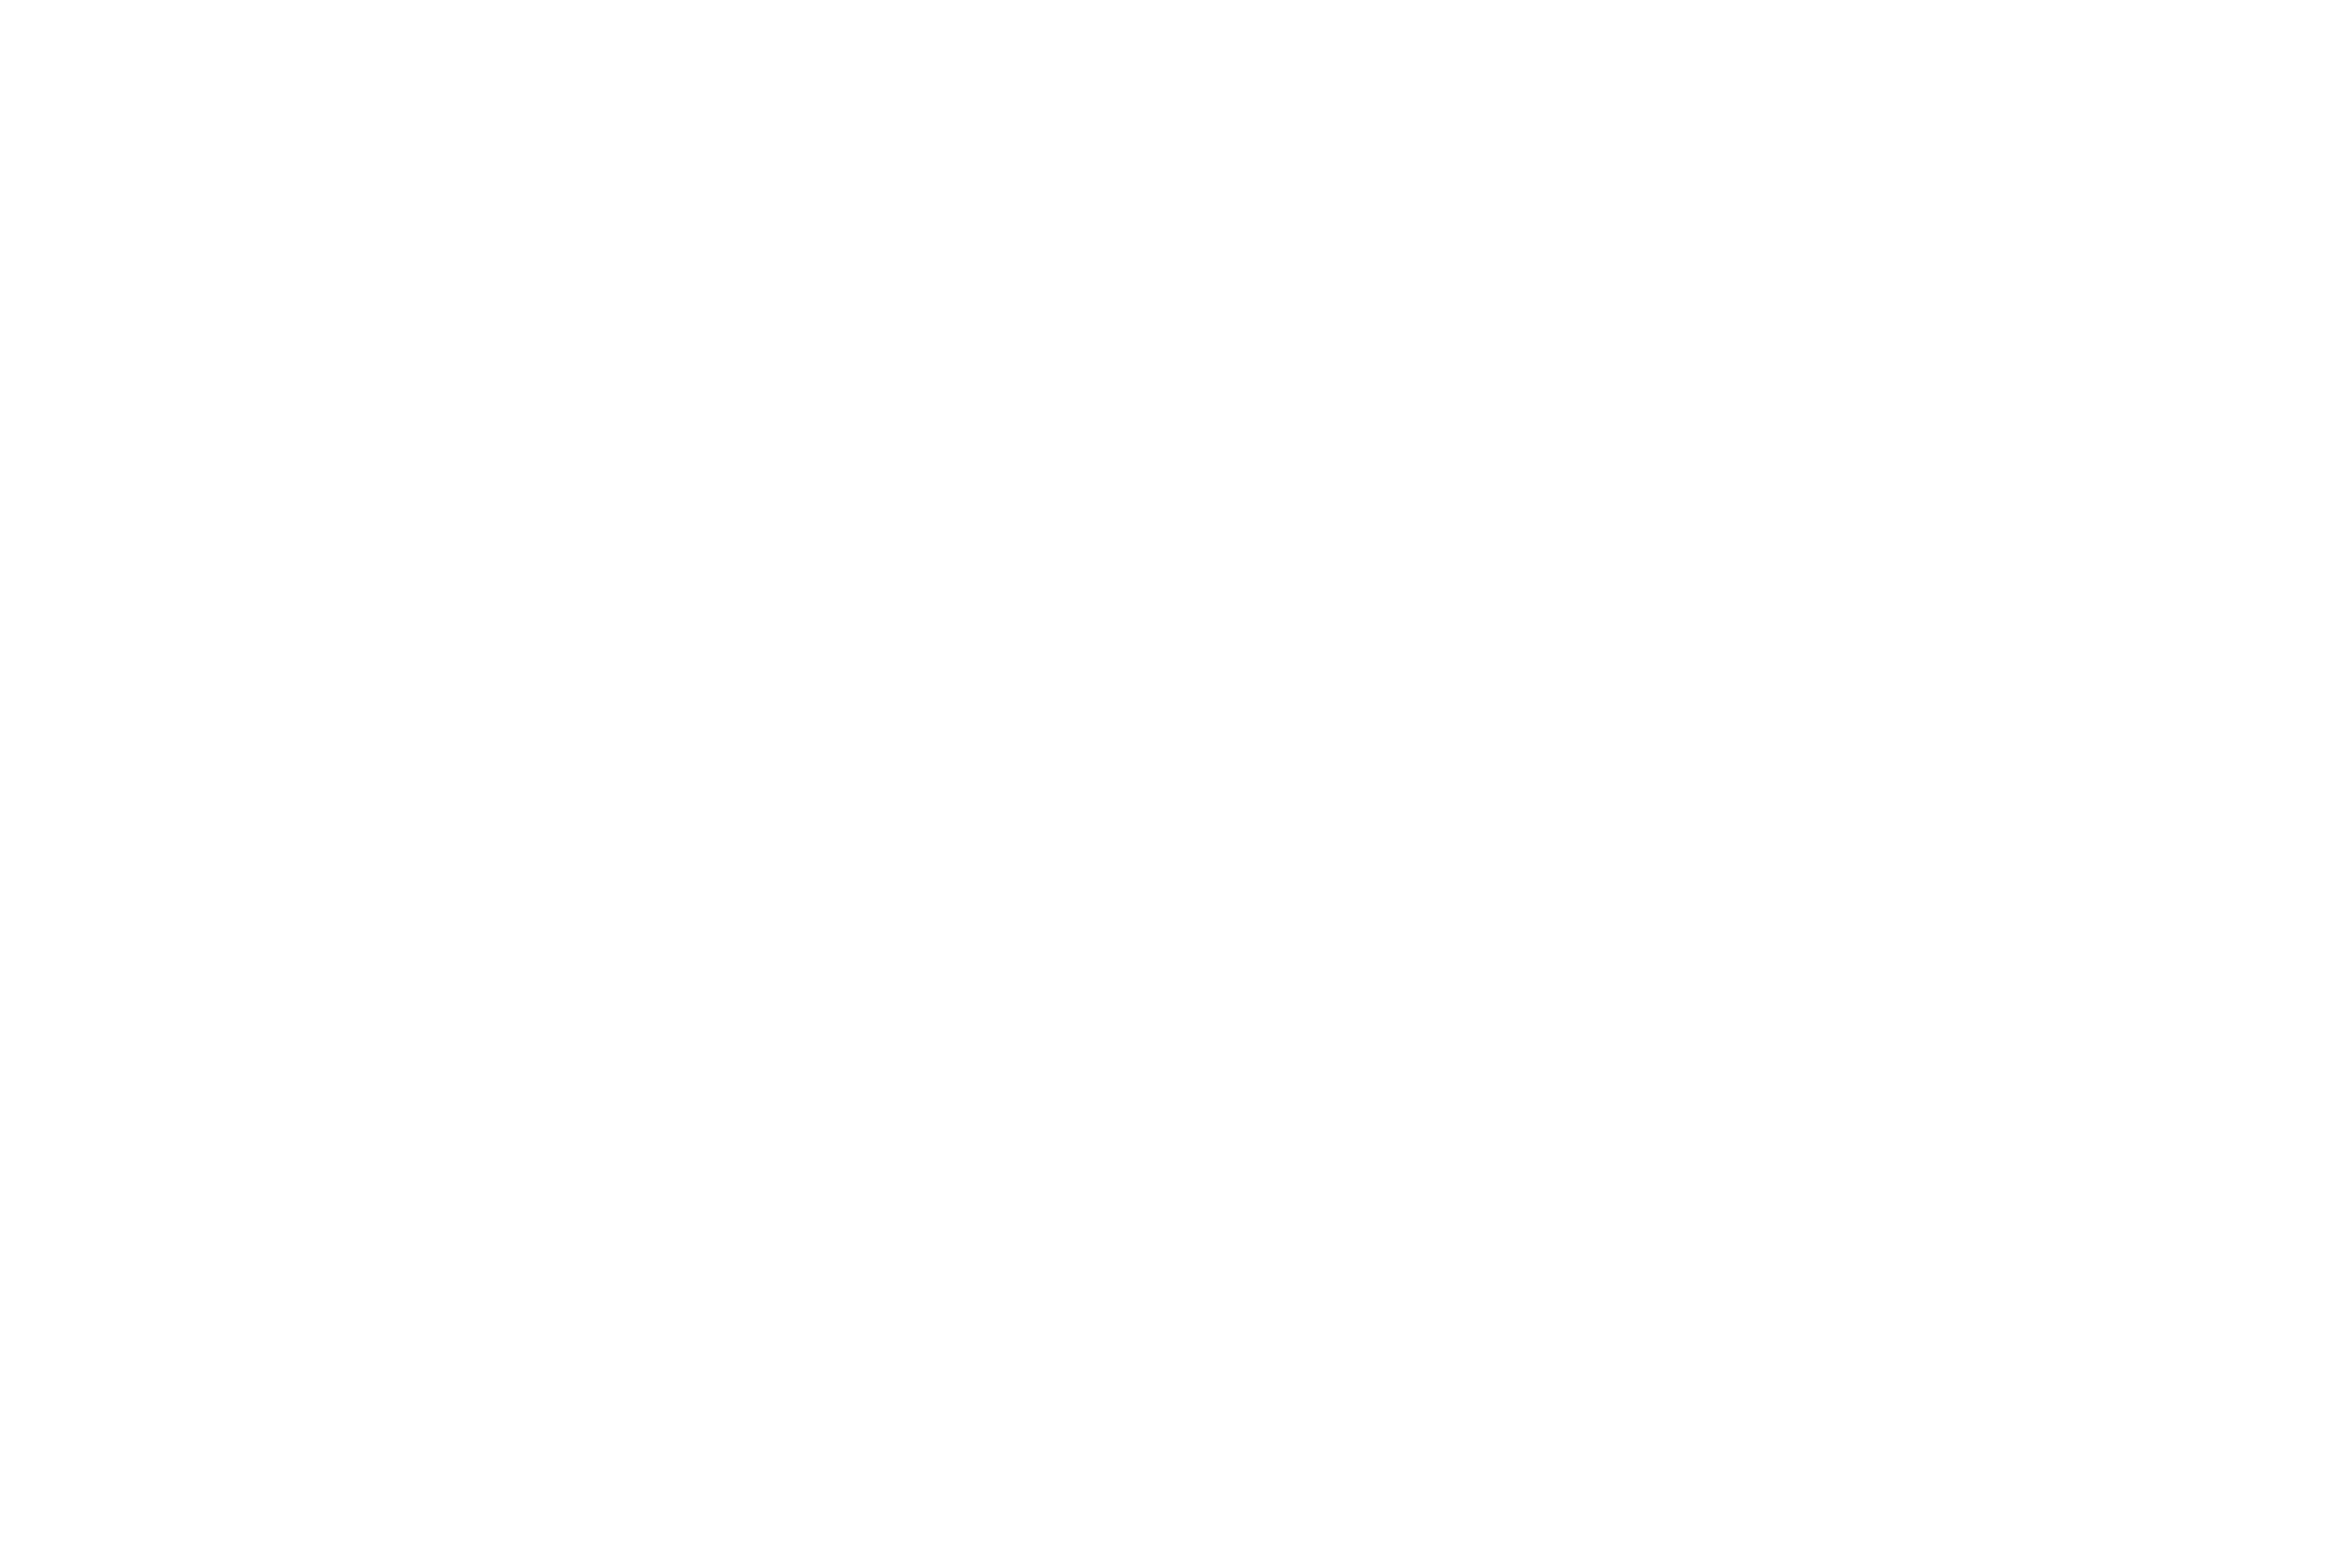 The Clean Air Hub logo